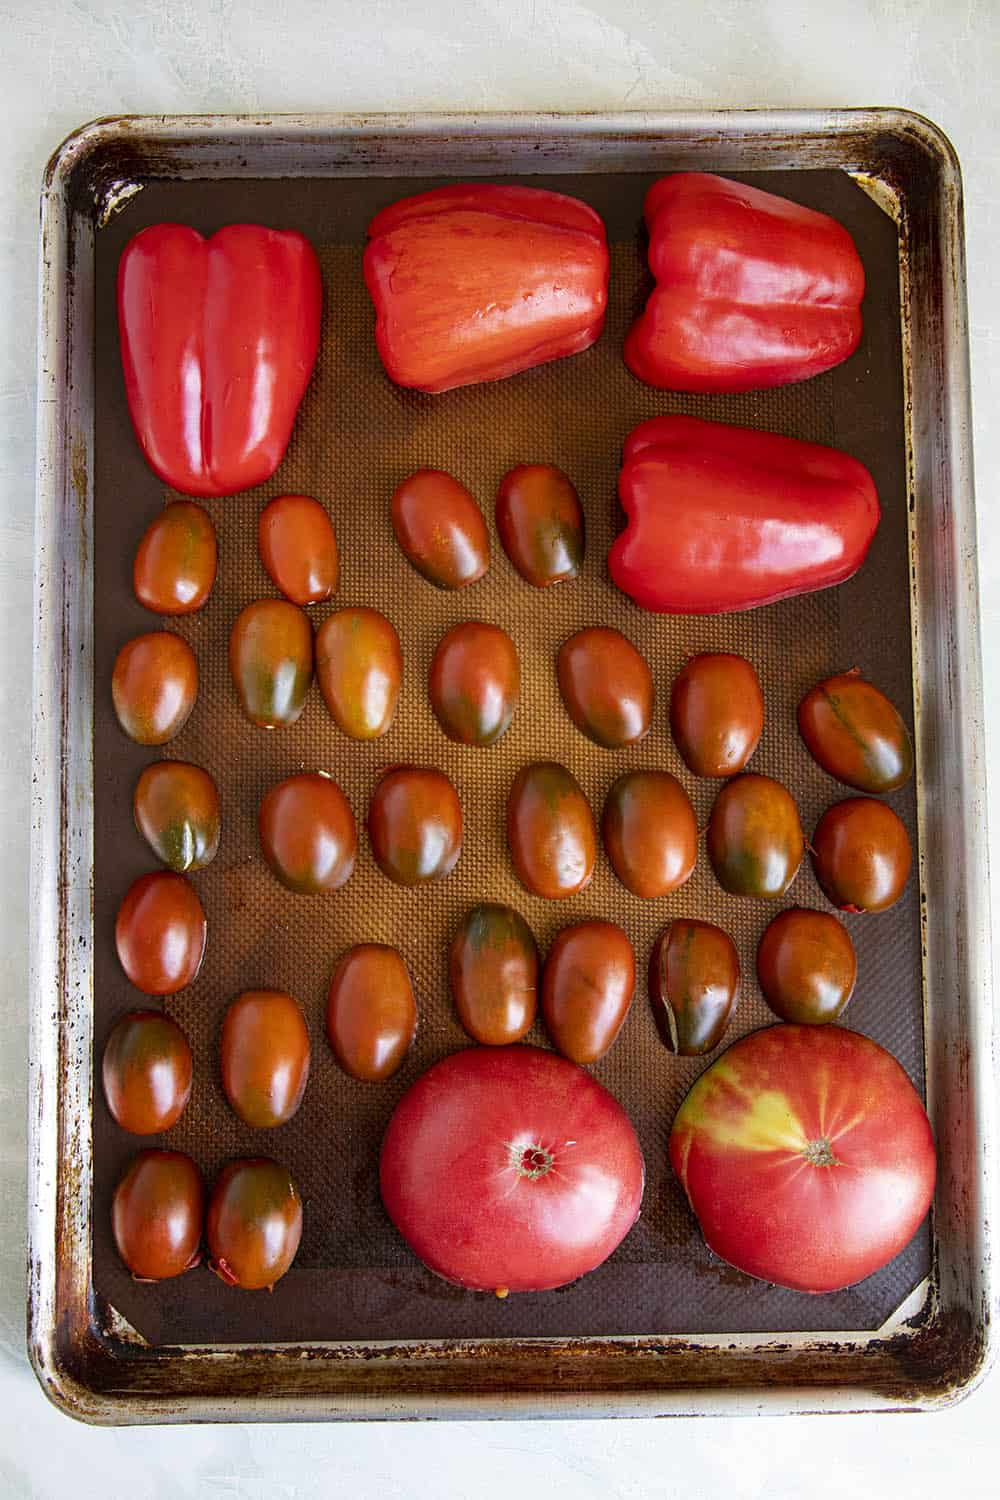 Tomatoes and peppers ready for roasting